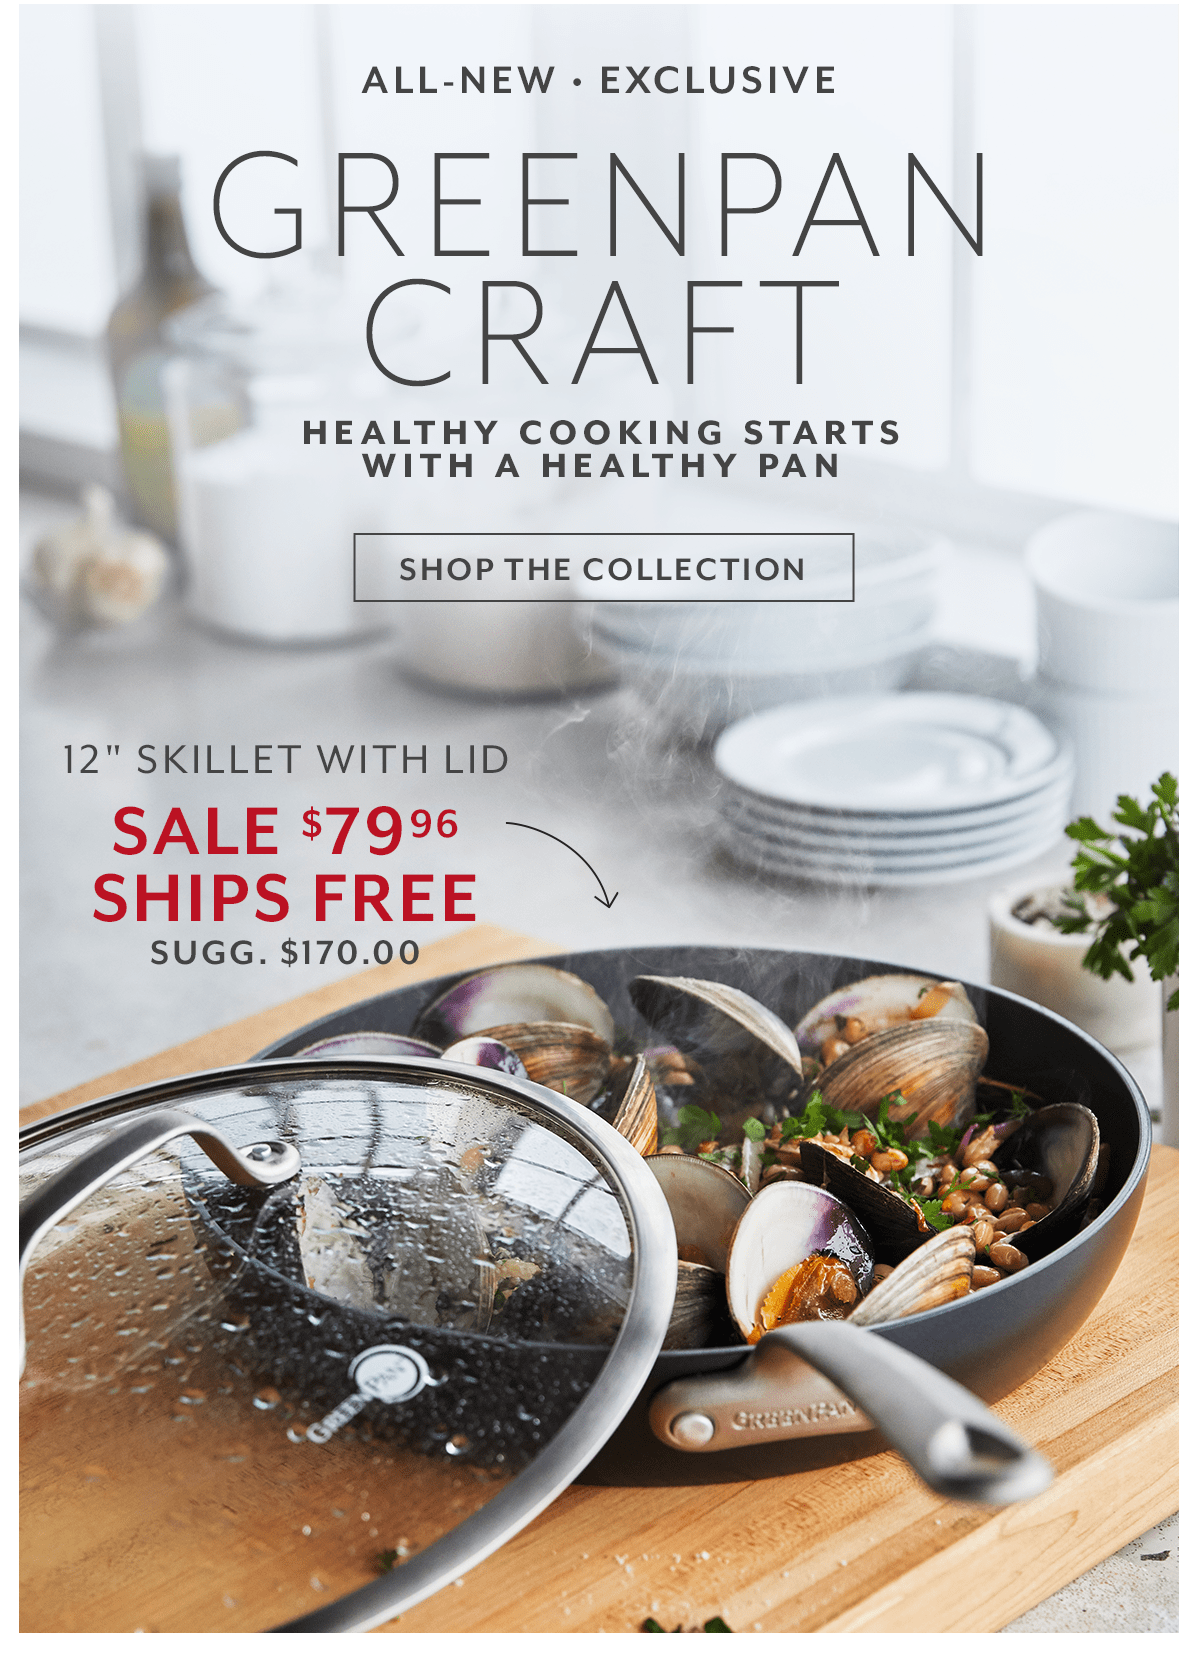 Greenpan Craft - Shop the Collection